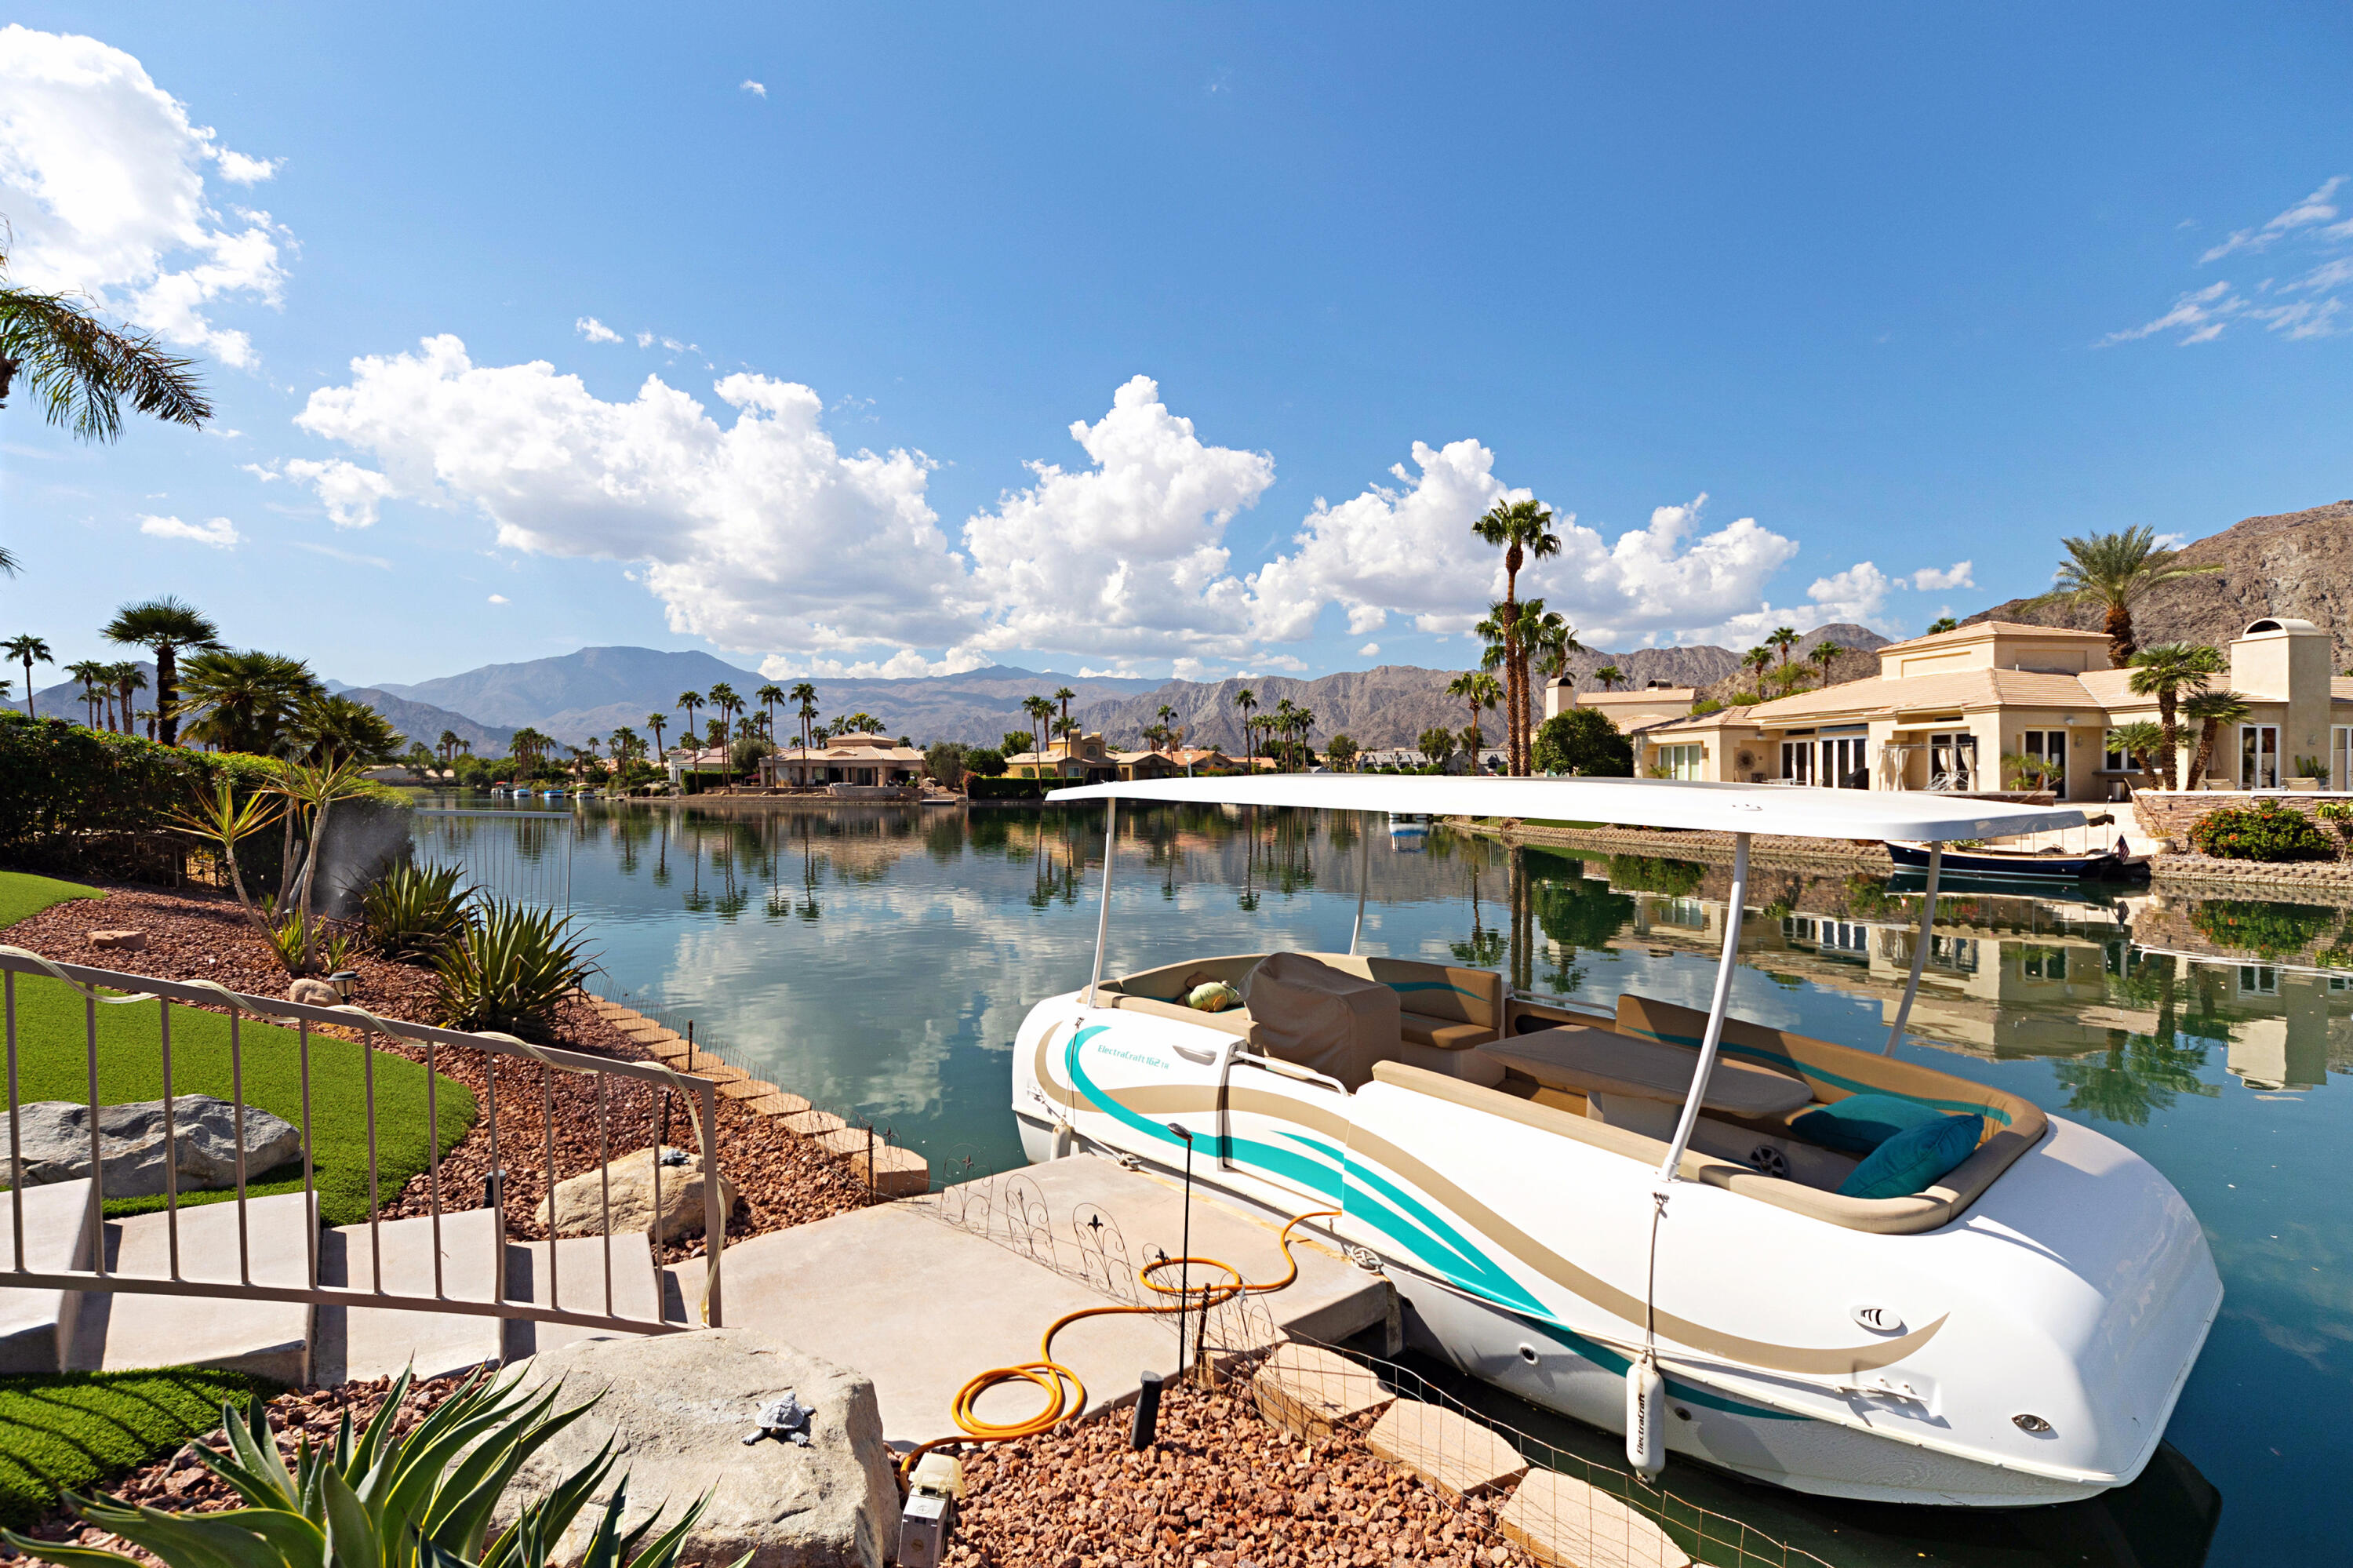 Have you ever dreamed of owning a lake house?  Great opportunity available now to own premier lake front home with amazing mountain views in prestigeous ''Lake La Quinta''.  This 2900+SF residence offer three bedrooms, three and half baths on a 12,197 SF lot.  As you walk through dramatic court yard to double doors, you are instantly captivated by the high ceilings and the large windows that provides ample natural light and unobstructed views of the shimmering lake & beautiful Santa Rosa mountains.   Master bedroom is spacious and has access to swimming pool & spa and sparkeling lake.  Master bath offer double vanity, soaking tub and walk-in shower.  Two large guest bedrooms each with own bathrooms and one has own private patio.  Kitchen is bright and open with white cabinets, stainless steel appliances, walk-in pantry and lots of storage throughout.  Resort like backyard over looking lake ideal for entertaining with built-in BBQ, fire pit, pool & spa, private boat dock and putting green where you can practice your short game from the comforts of your own outdoor patio.  Home is clean, move in ready and is a great value!  This one will go fast.....Submit your offer today!!!